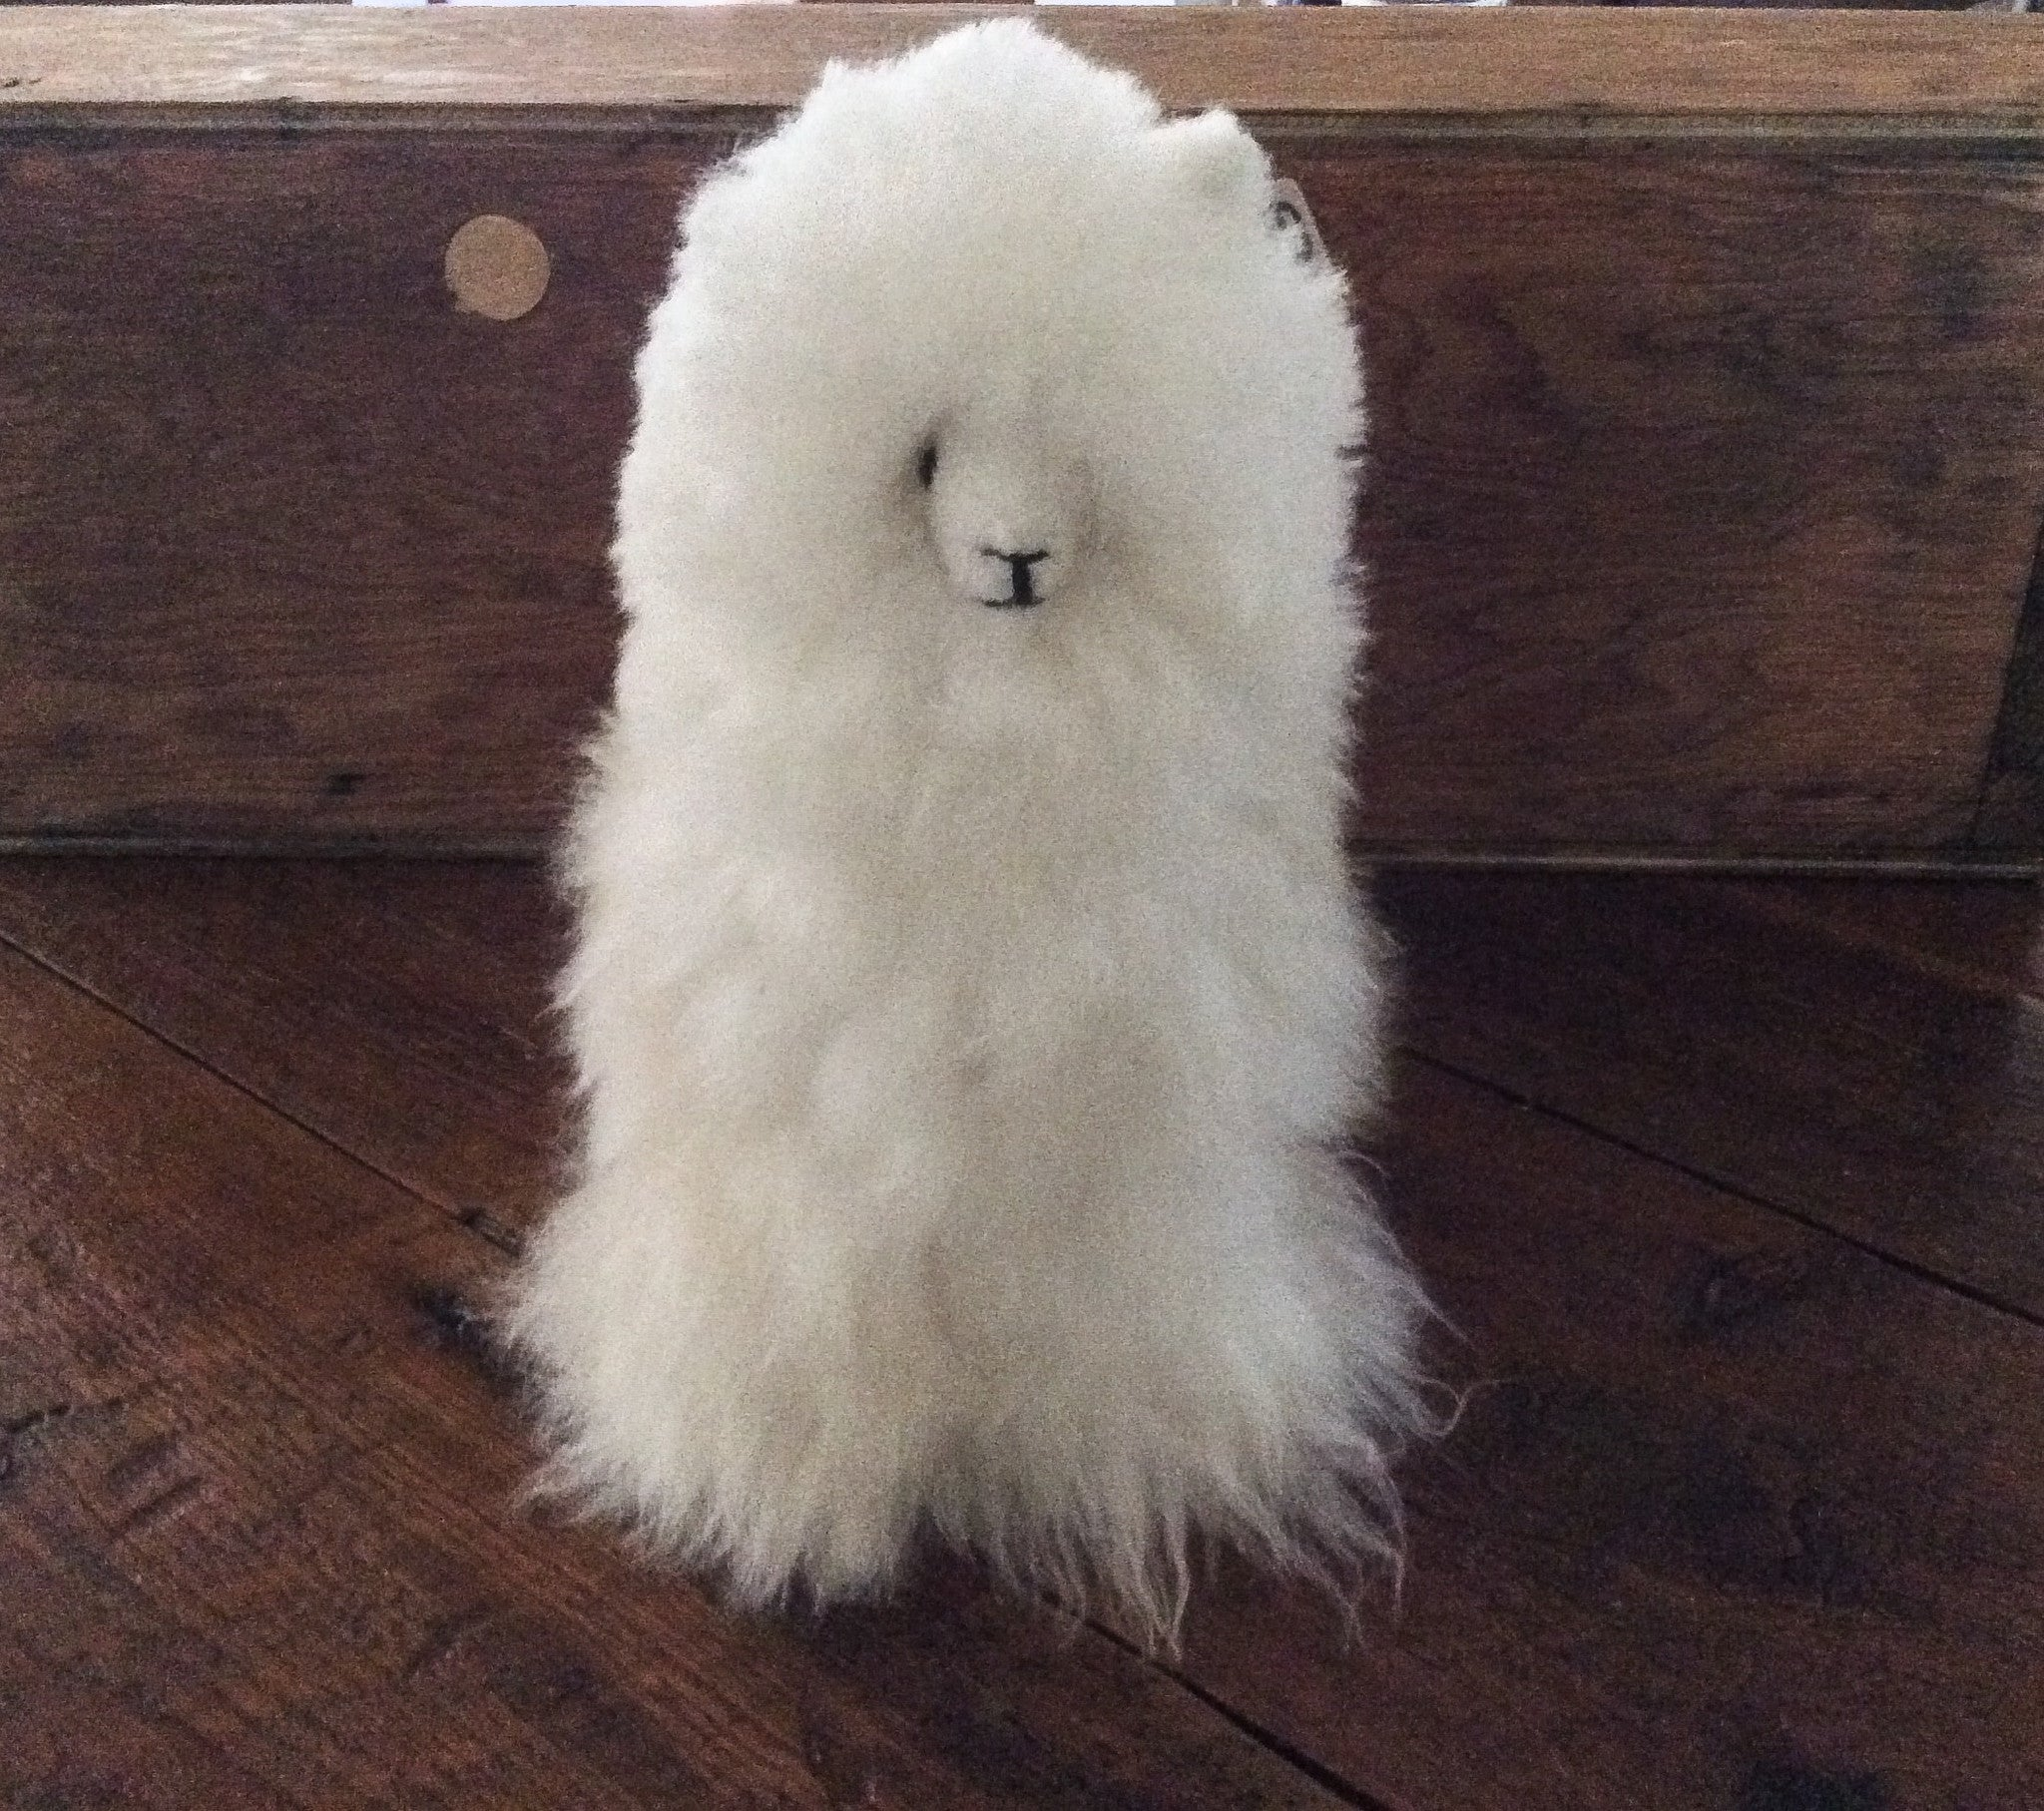 alpaca-stuffed-animal-1